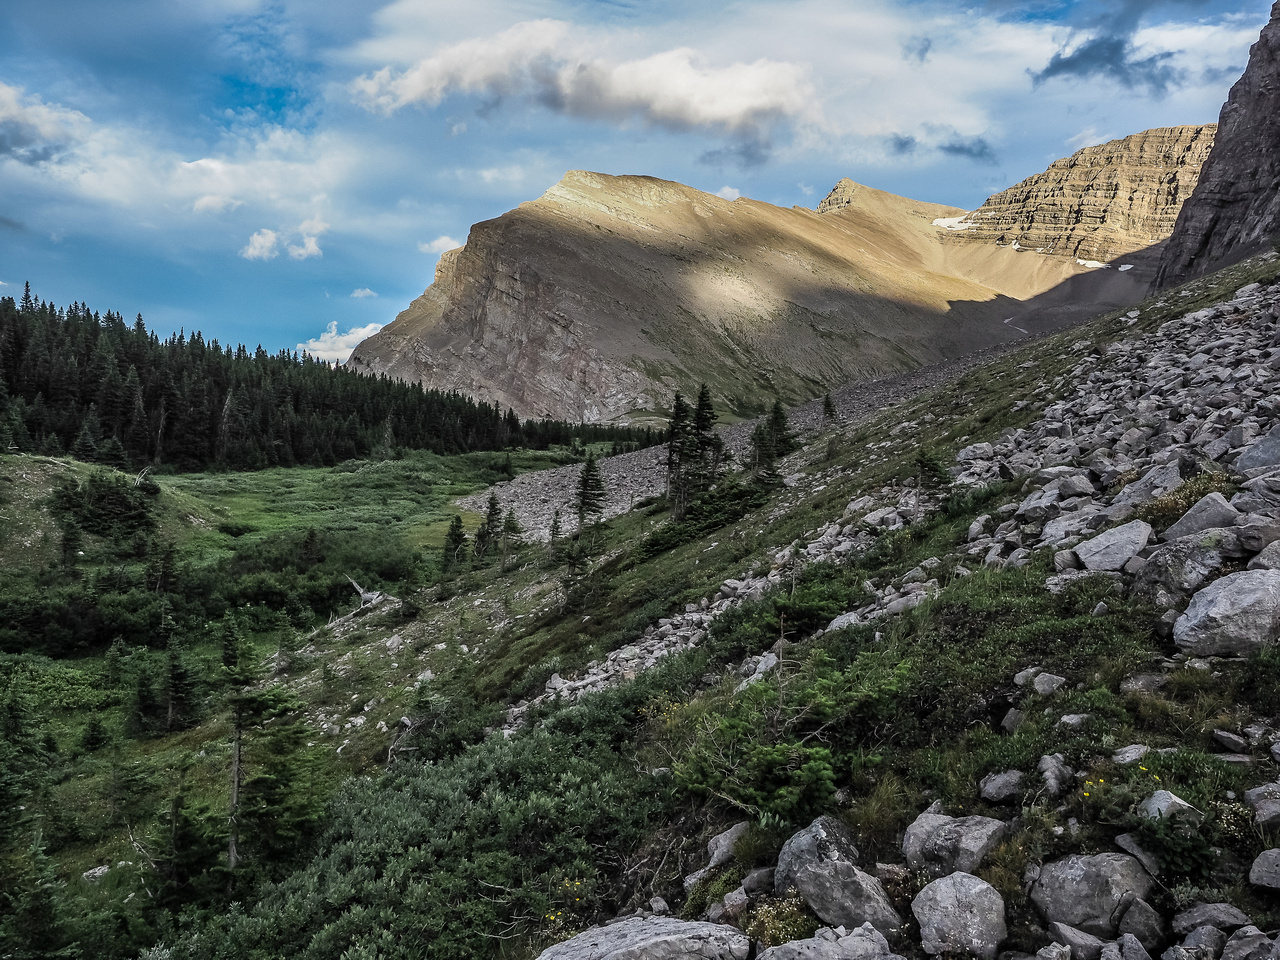 Approximately 9 hours after starting up the lower slopes of Mount MacLaren we're back from a long loop covering two peaks and lots of interesting landscapes.